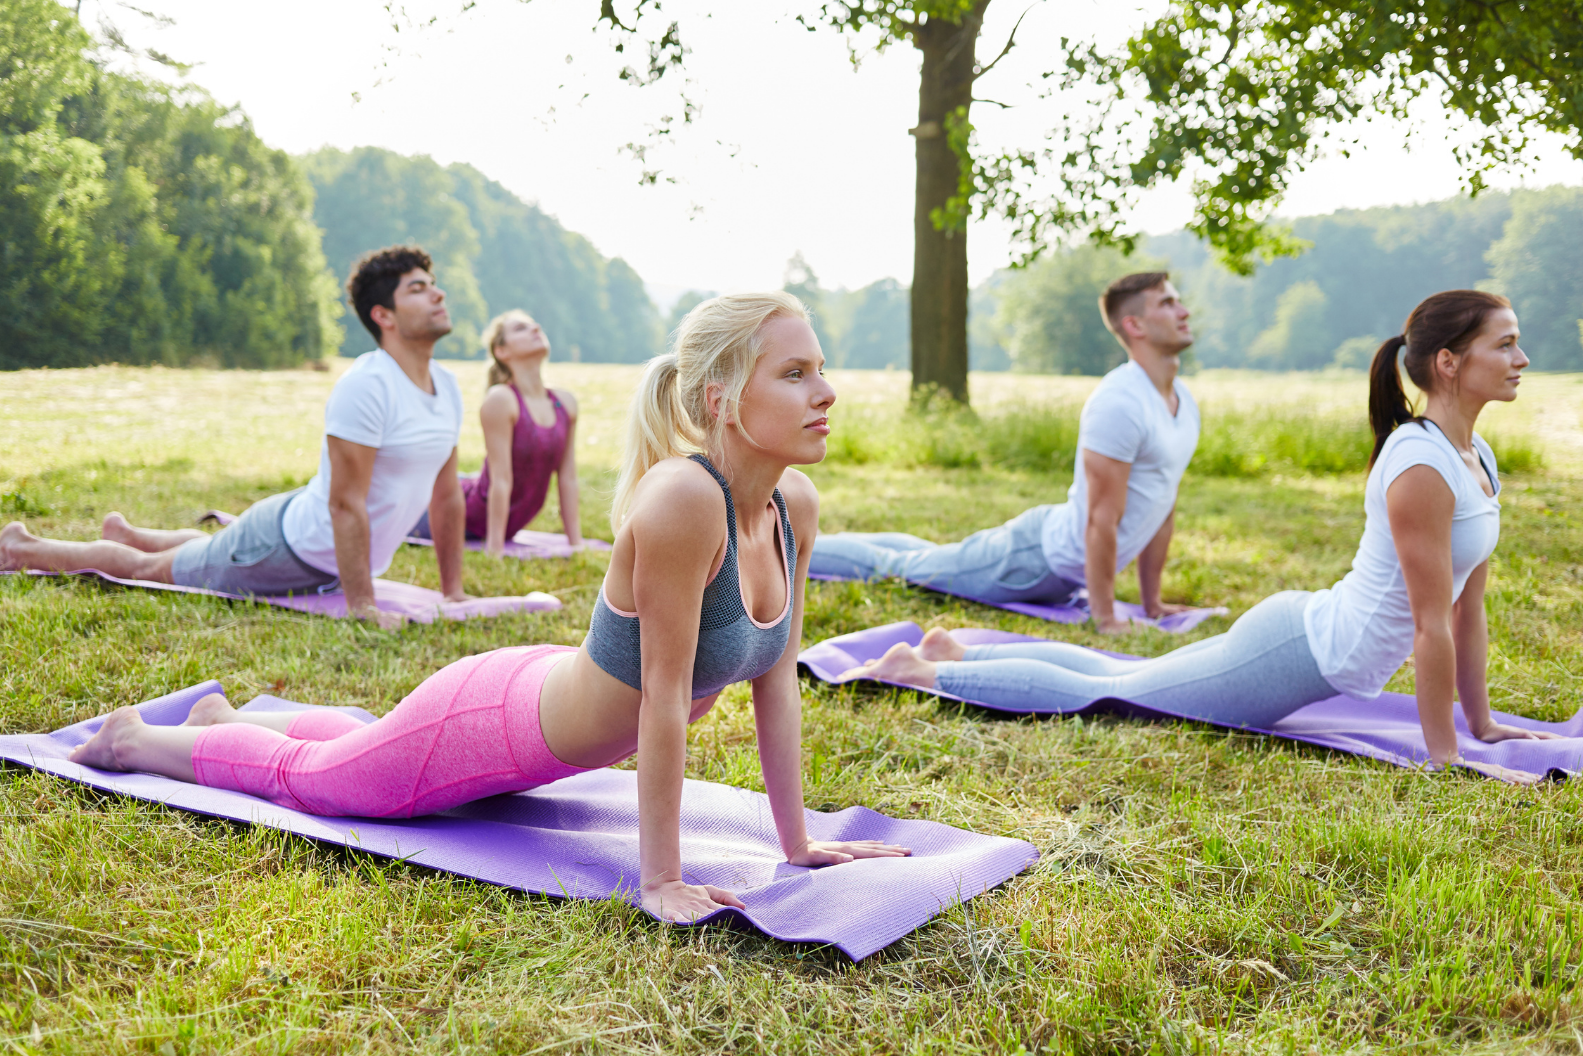 A group of yoga students performing a yoga asana in a green park